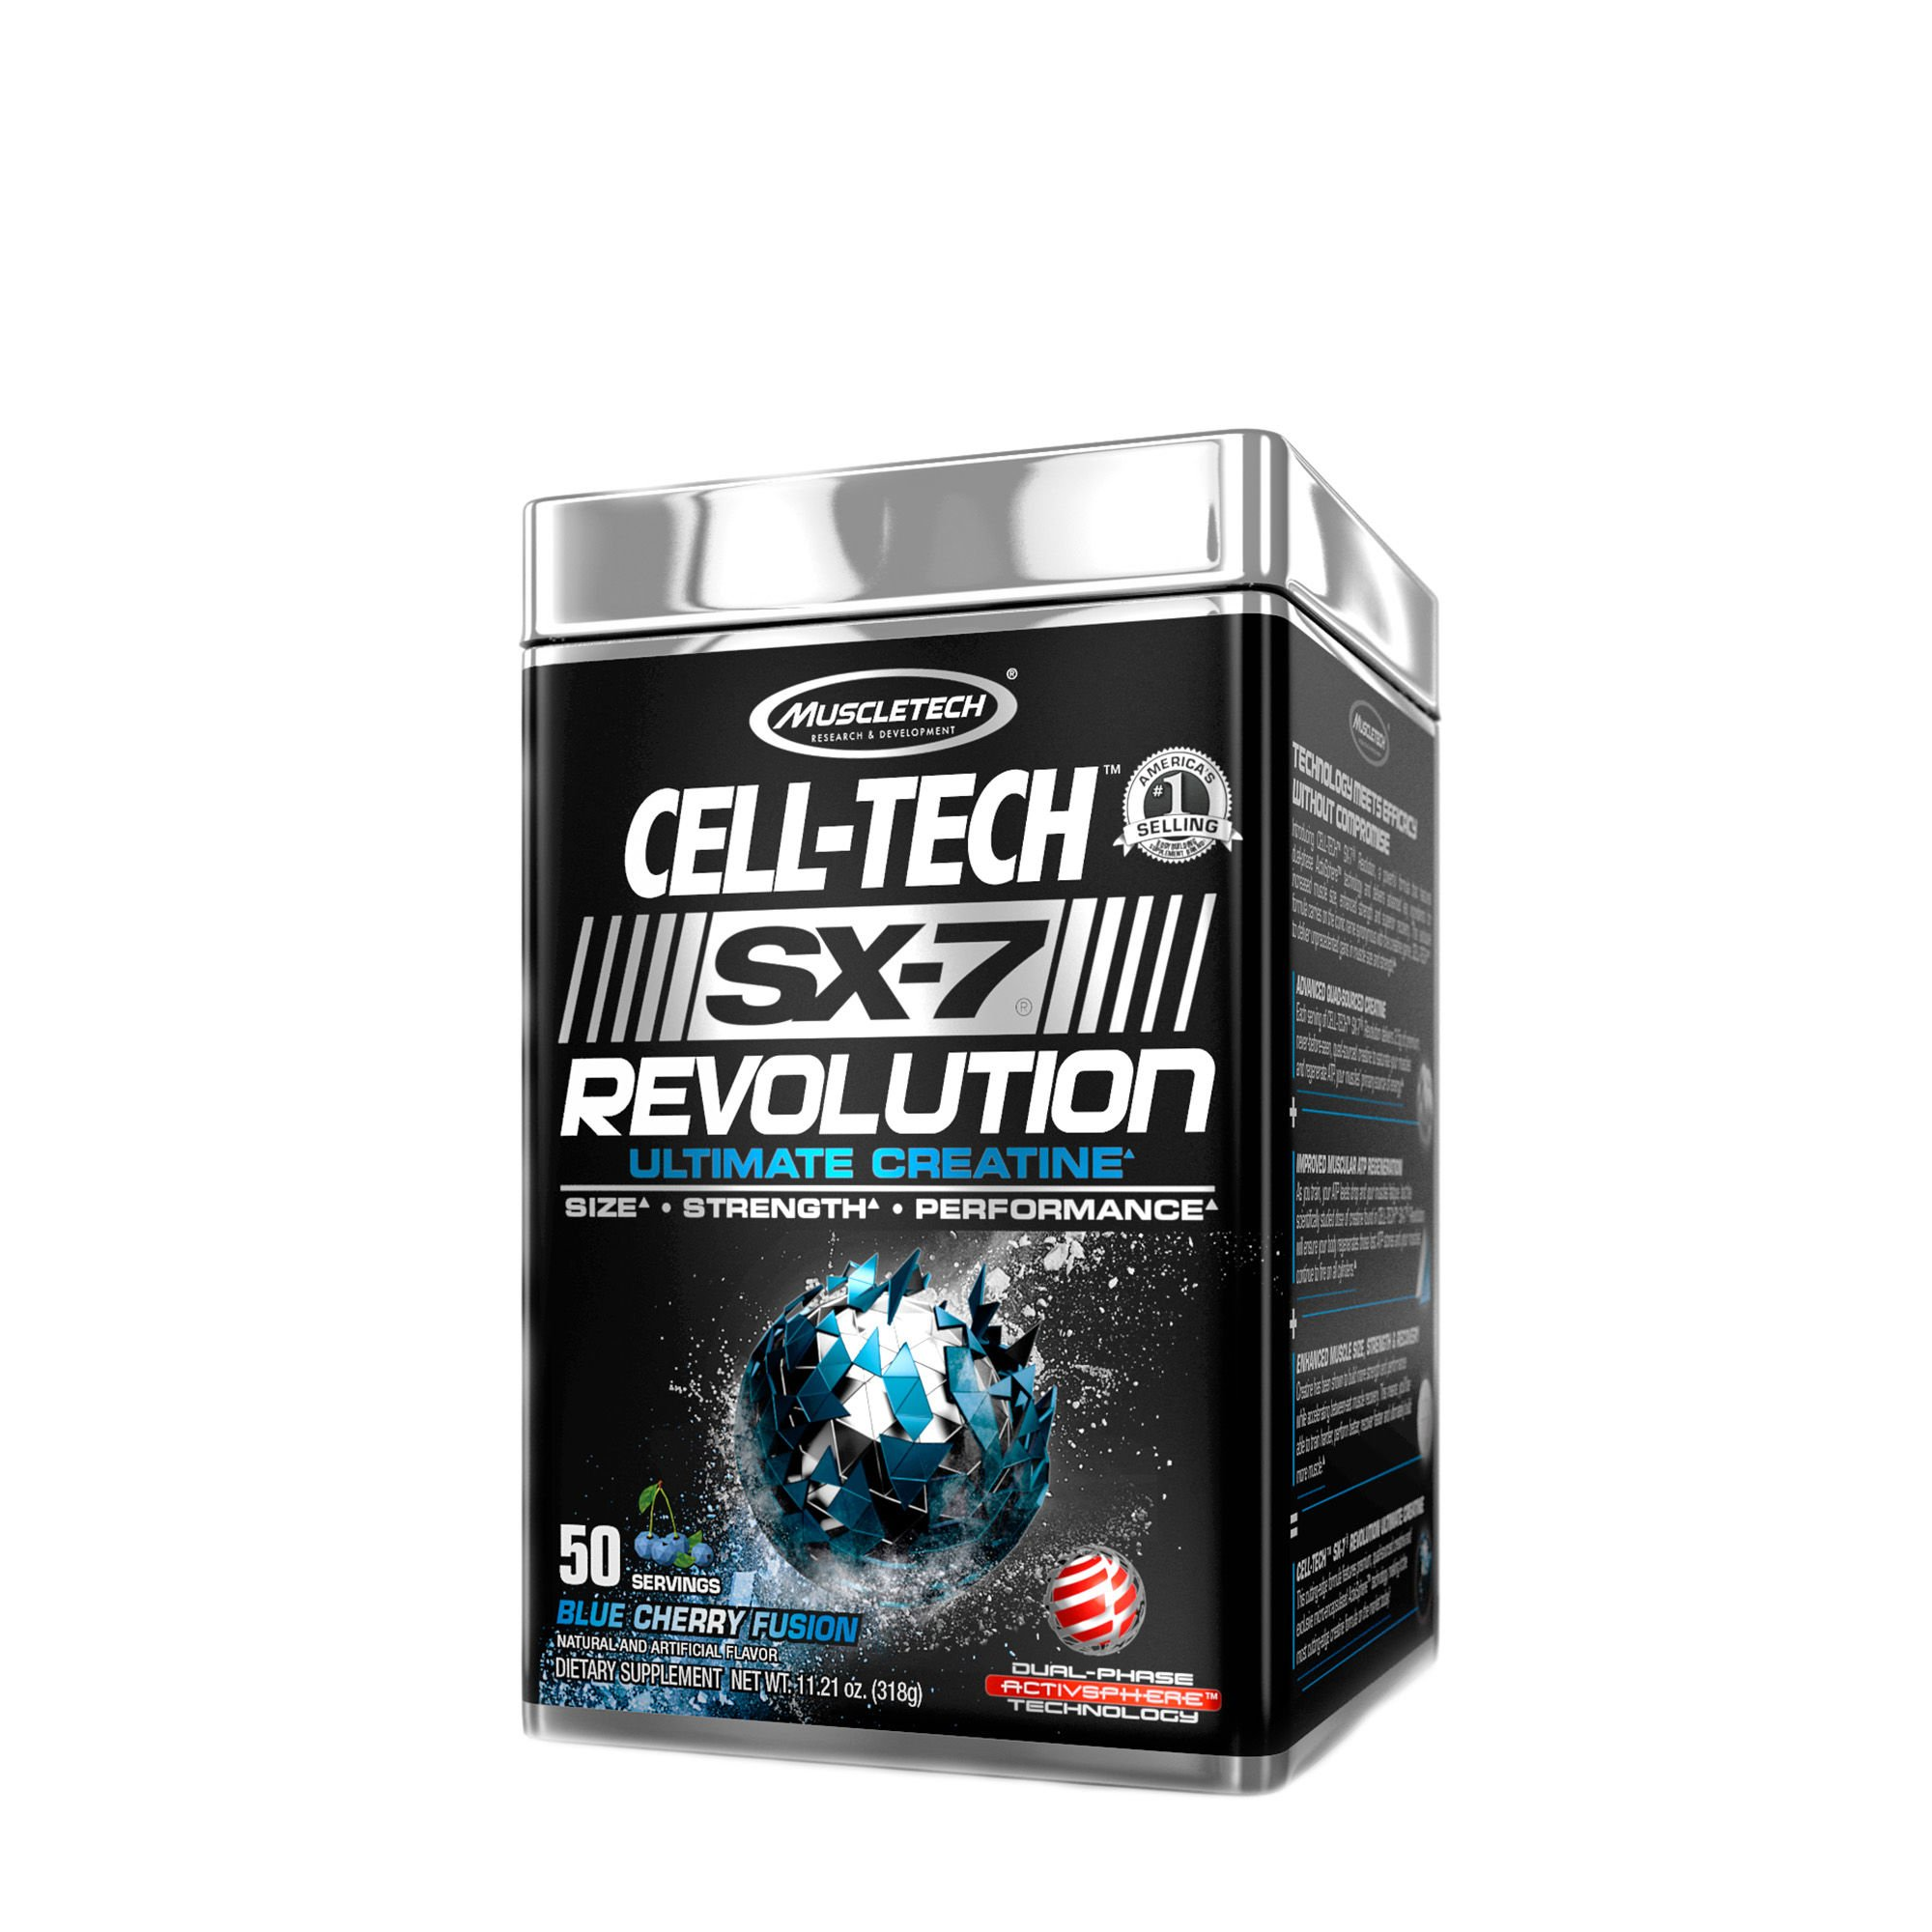 MuscleTech Cell-Tech SX-7 Revolution - Blue Cherry Fusion